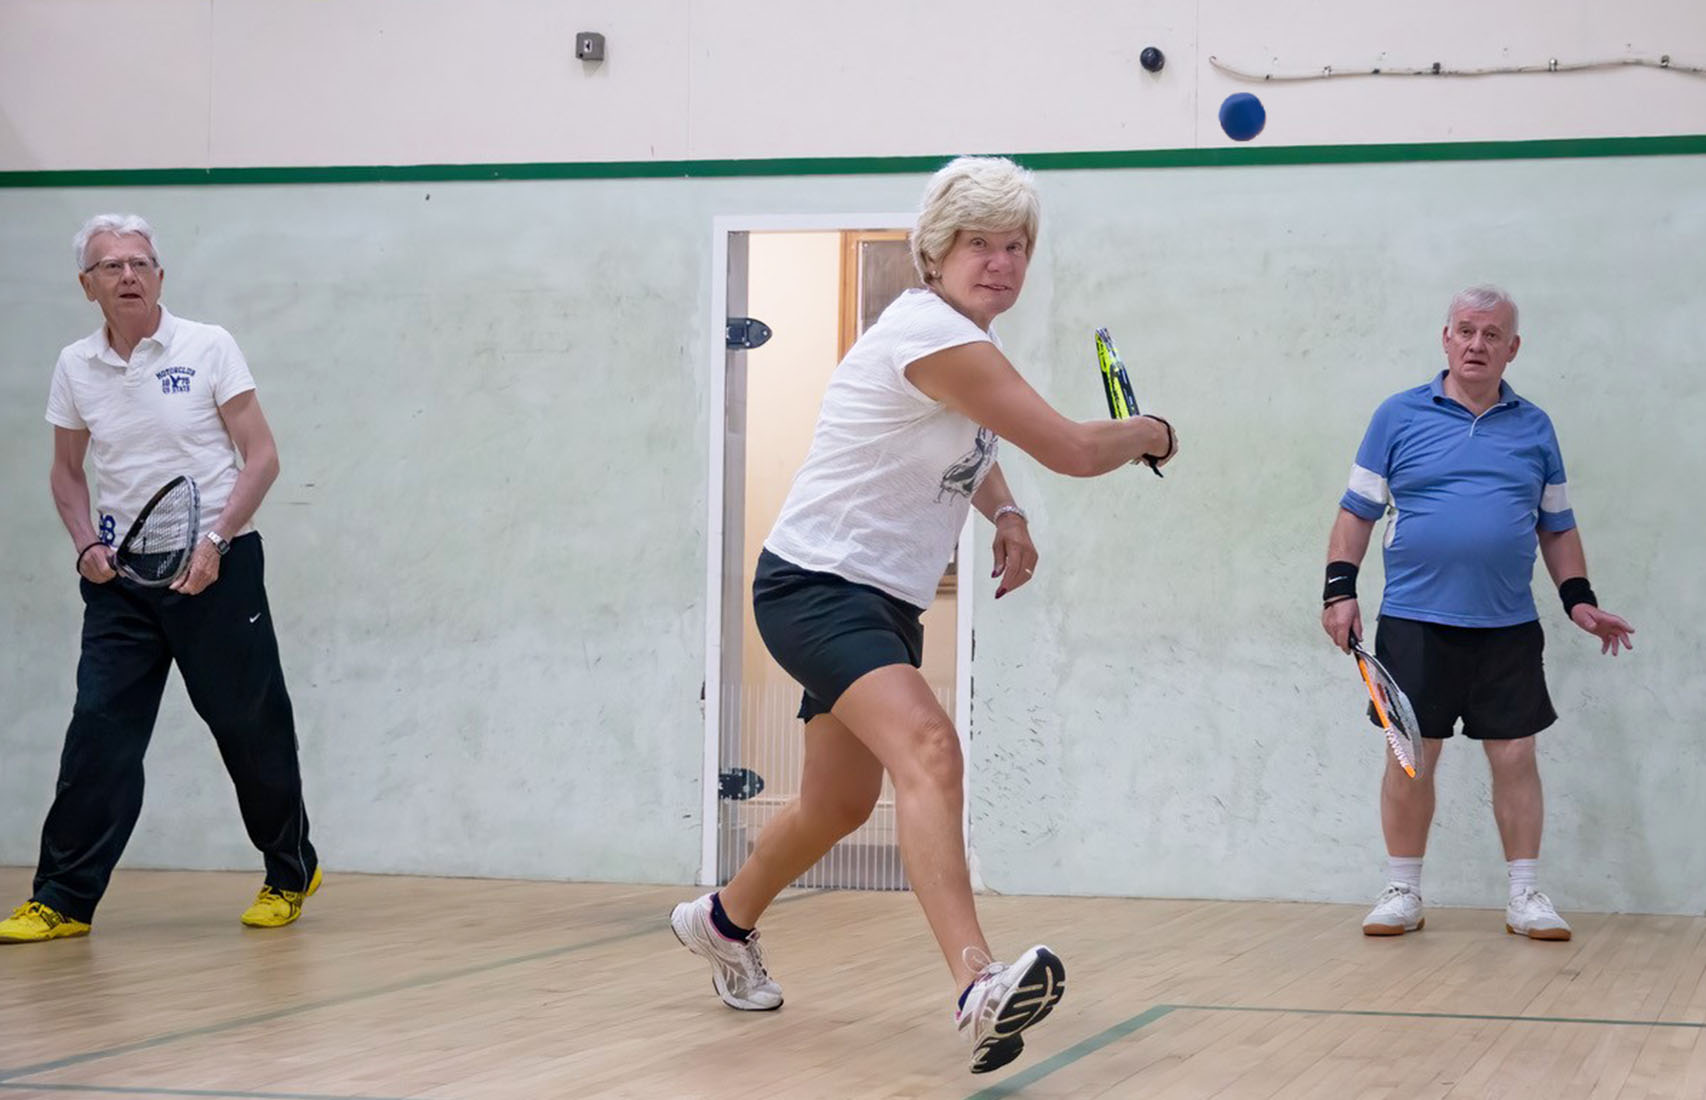 Squash 57 players at Princes Squash Club's U3A session